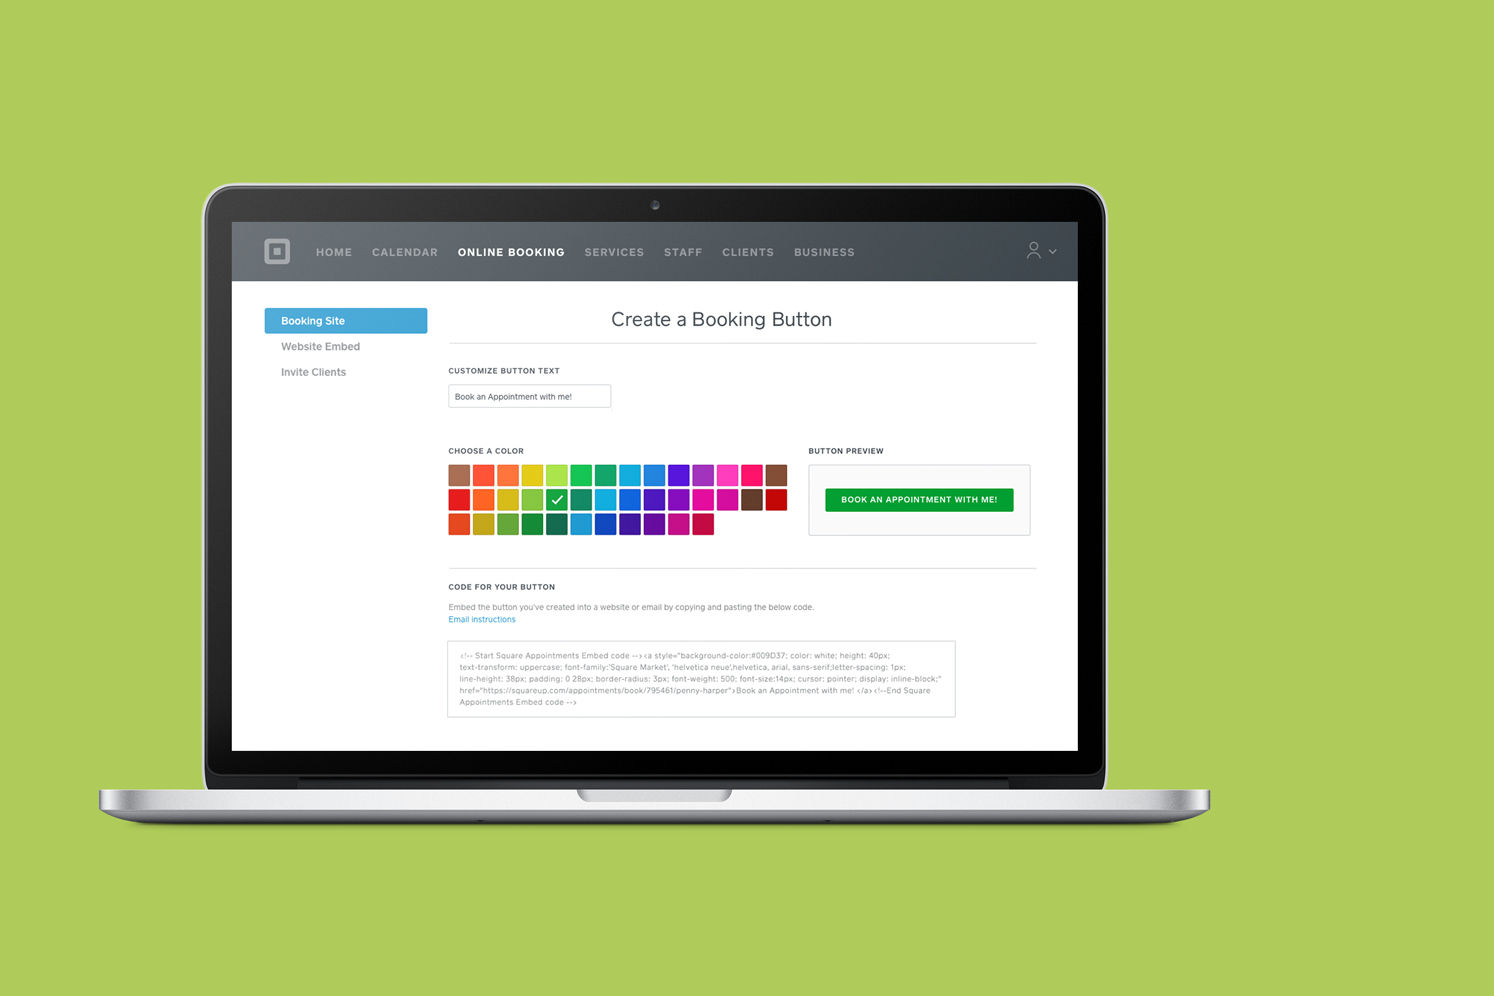 Booking Site Online Booking With Square Appointments Just Got Even Easier